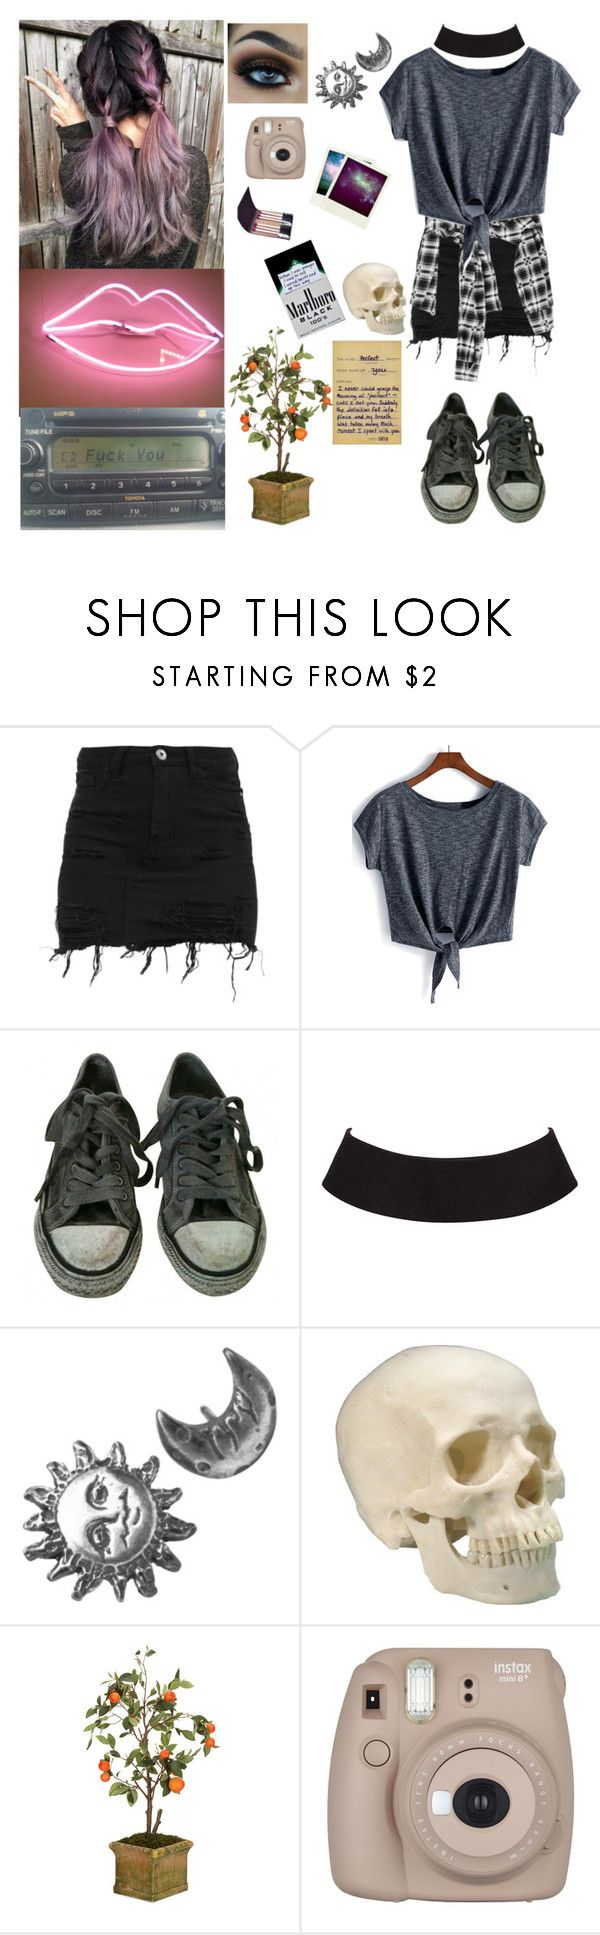 """""""I'm Going Back to 505"""" by living-among-the-moon-and-stars ❤ liked on Polyvore featuring AllSaints, Stefanie Sheehan Jewelry, Diane James, Fujifilm, Polaroid, indie, grunge and alternative"""